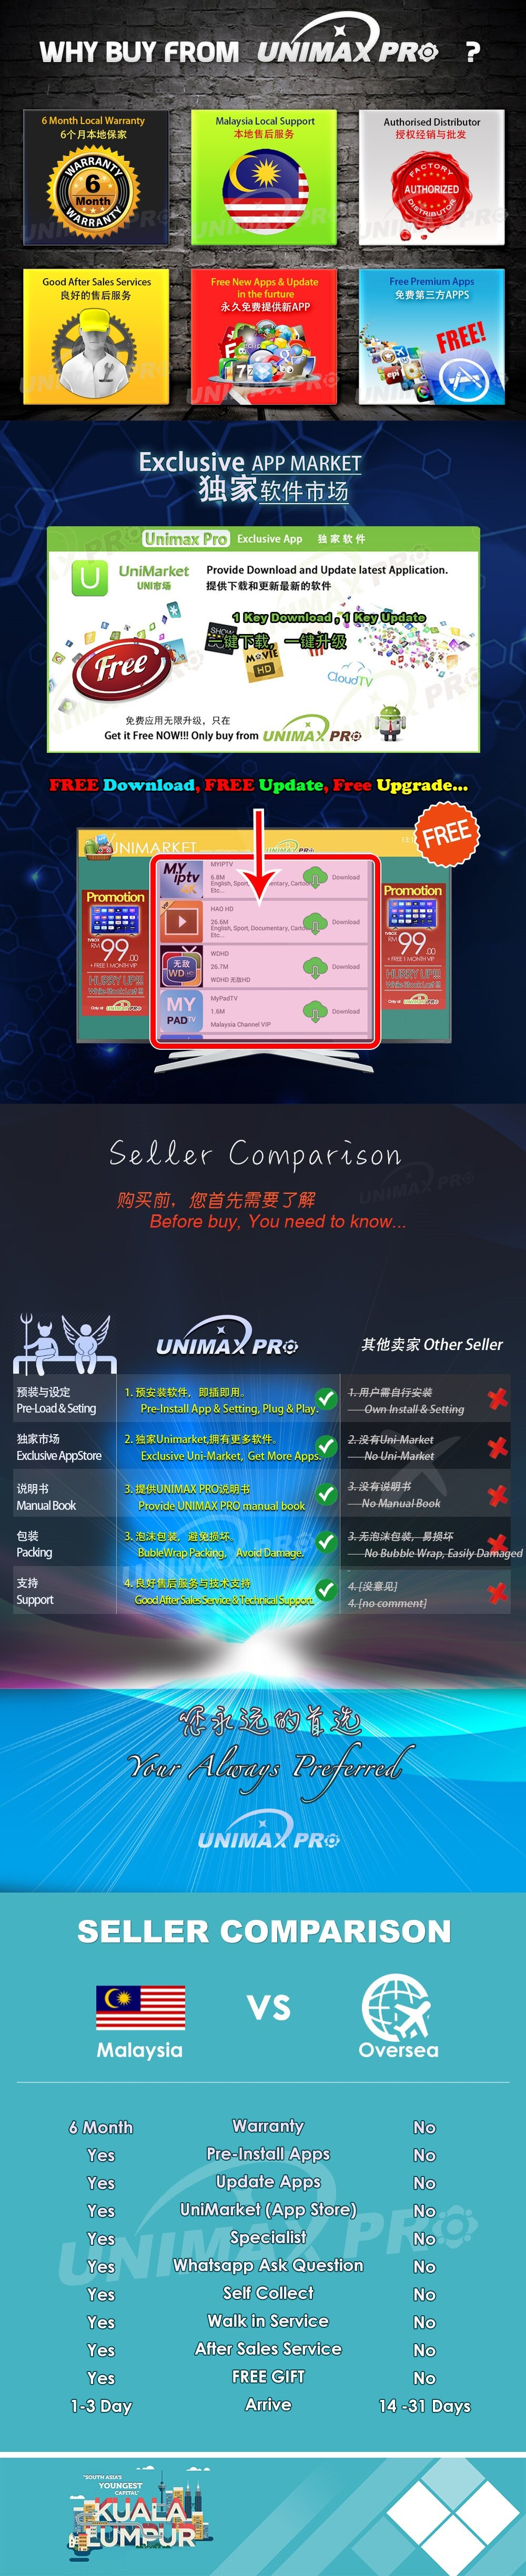 (Unimax Pro) Egreat A8 PRO Huawei Hisilicon Hi3798CMV200 Quad Core 2GB RAM  8GB ROM Android 7 TV Box Malaysian Famous Apps 10000+ TV Channel VOD Movie